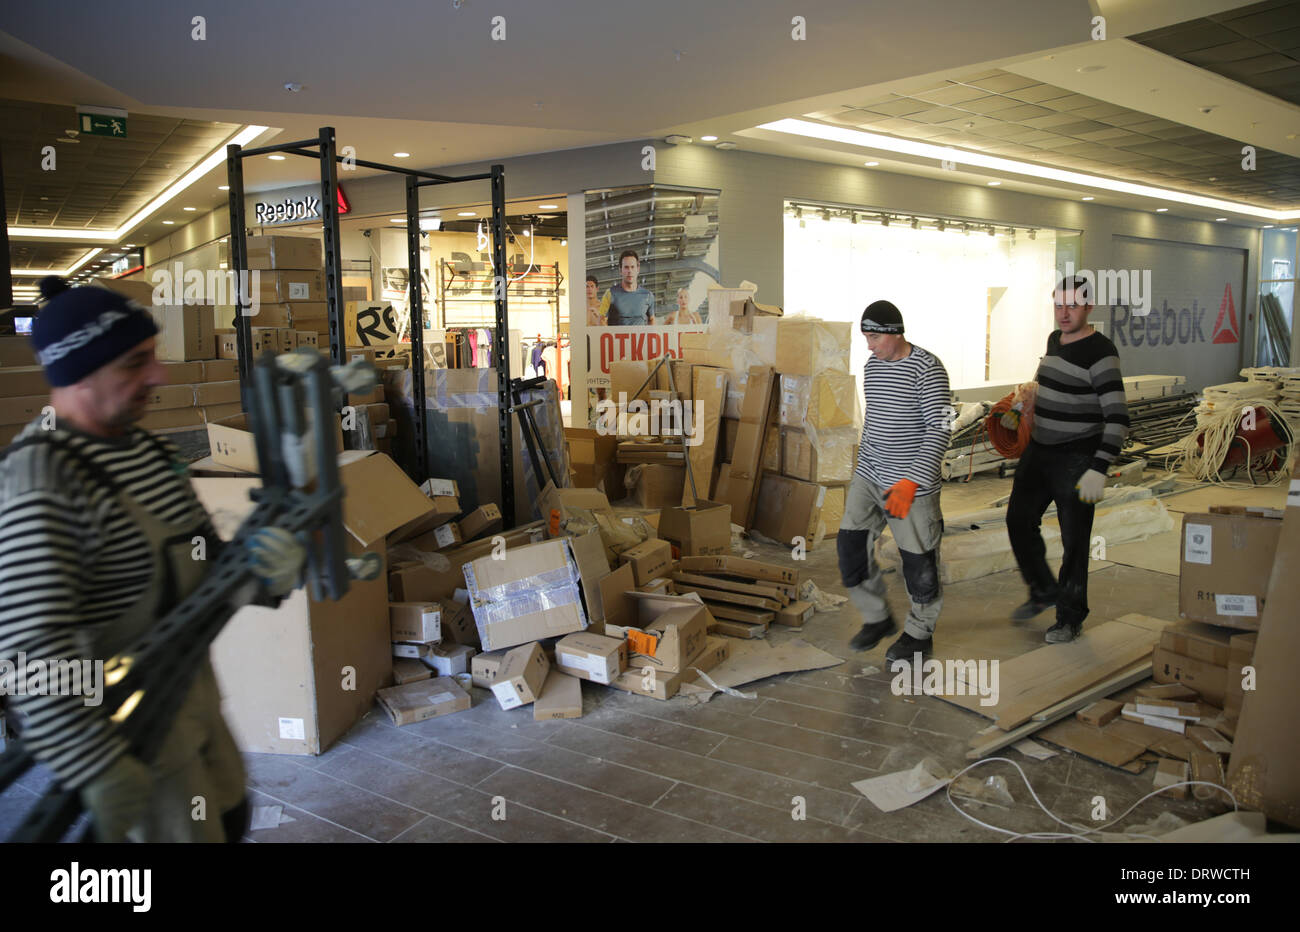 Sochi, Krasnodar region, Russia. 02nd Feb, 2014. Workers walk through the unfinished Gorky Gorod Shopping Mall in Krasnaya Polyana near Sochi, Krasnodar region, Russia, 02 February 2014. The Olympic Winter Games 2014 in Sochi run from 07 to 23 February 2014. Photo: Michael Kappeler/dpa (zu dpa-Meldung: «Hotel-Baustellen bereiten IOC und Organisationskomitee Sorgen» vom 28.01.2014)/dpa/Alamy Live News - Stock Image